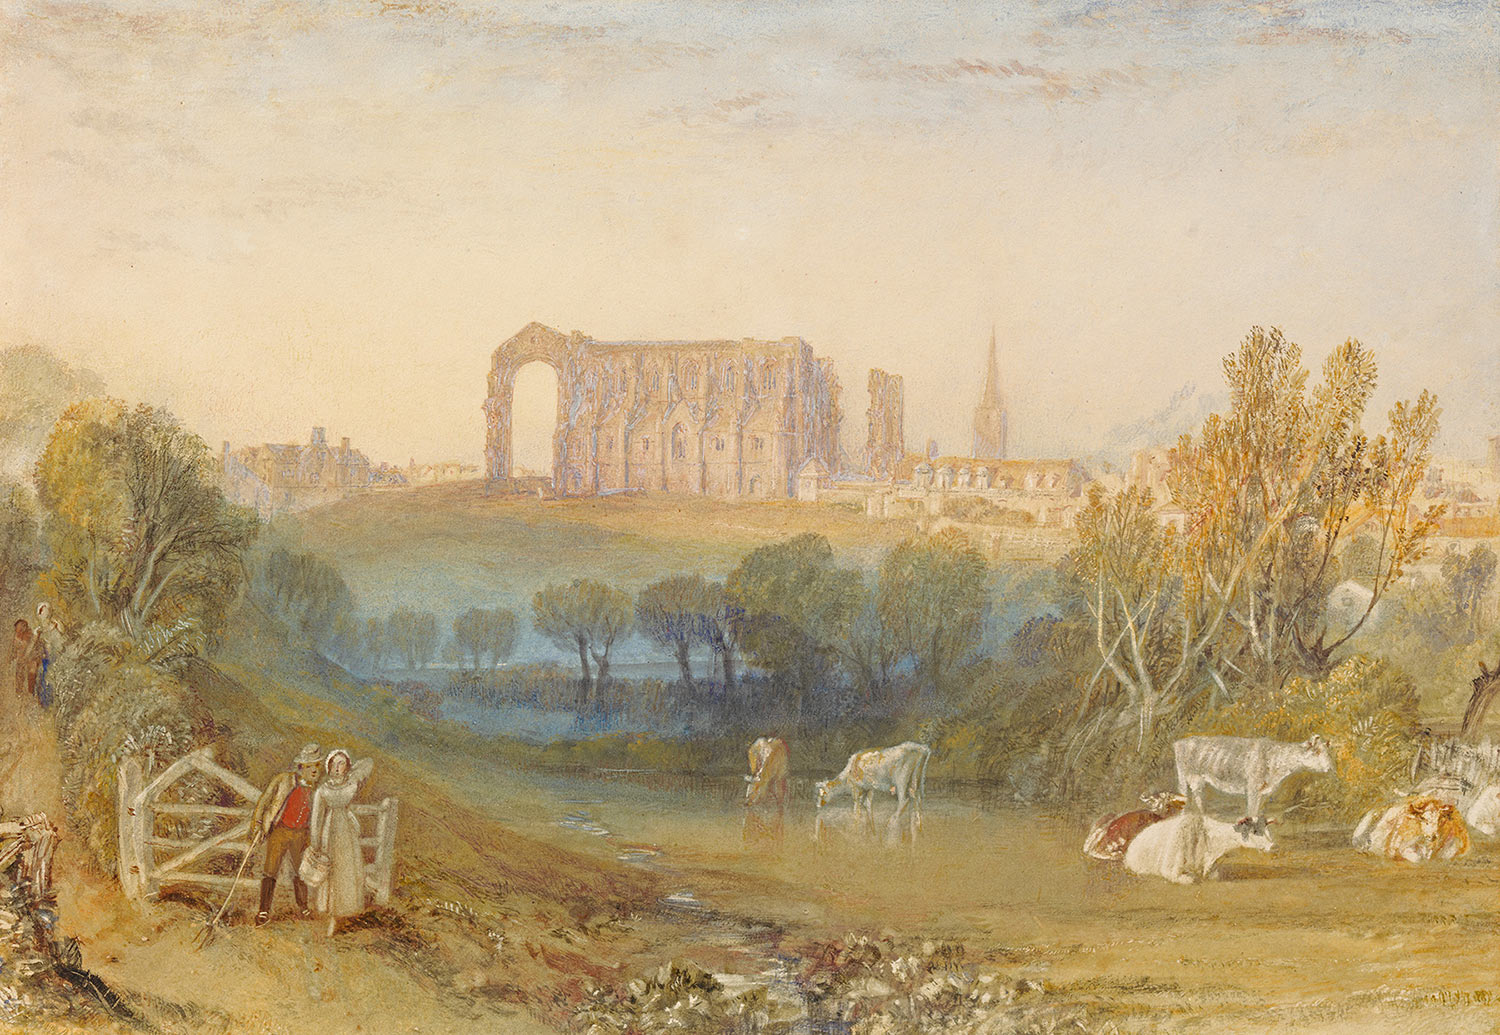 Joseph Mallord William Turner - Malmesbury Abbey, Wiltshire